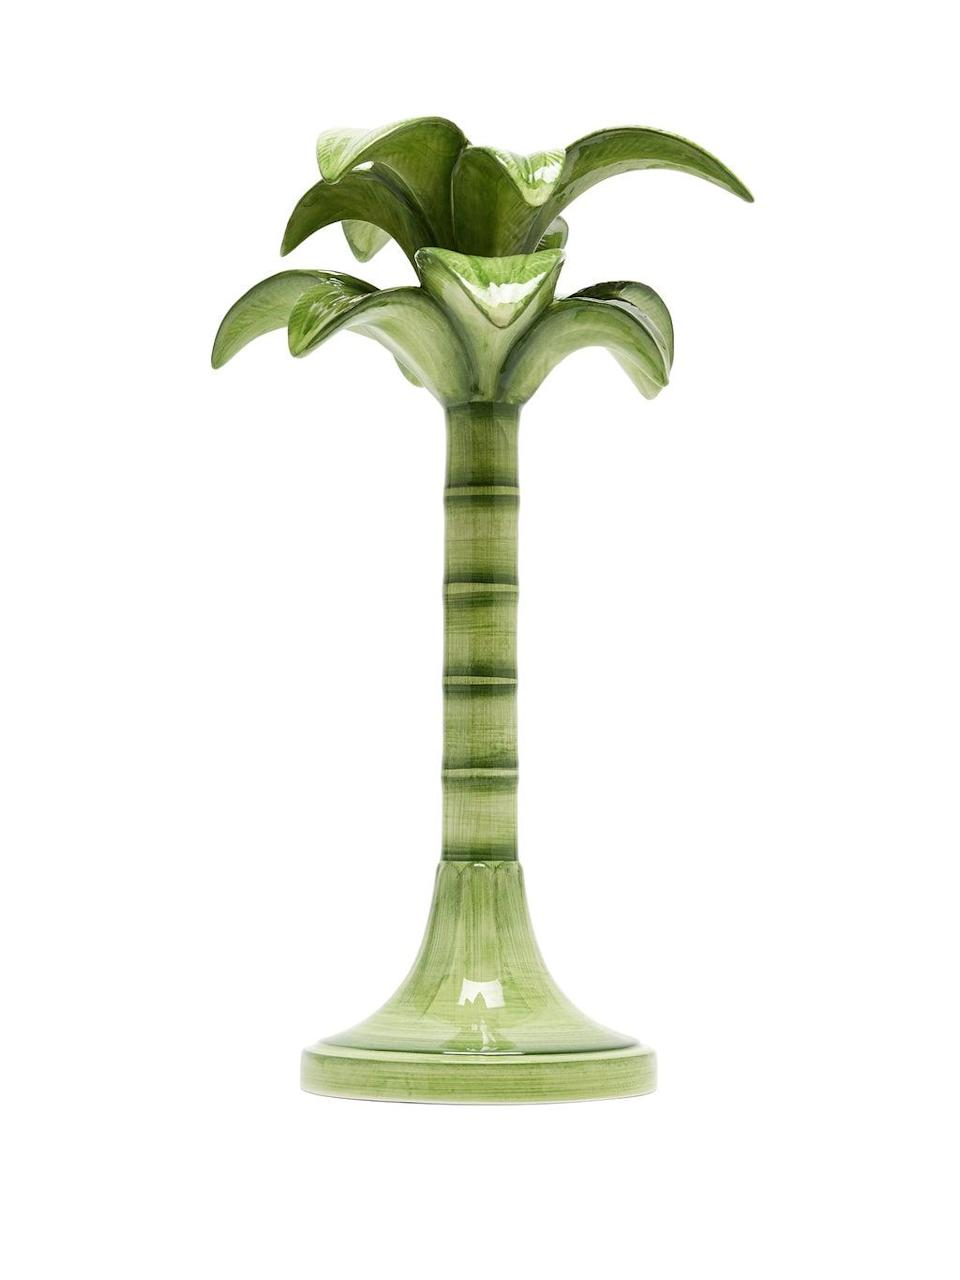 Palm tree holder, £258, Les Ottomans at Matches (Handout)